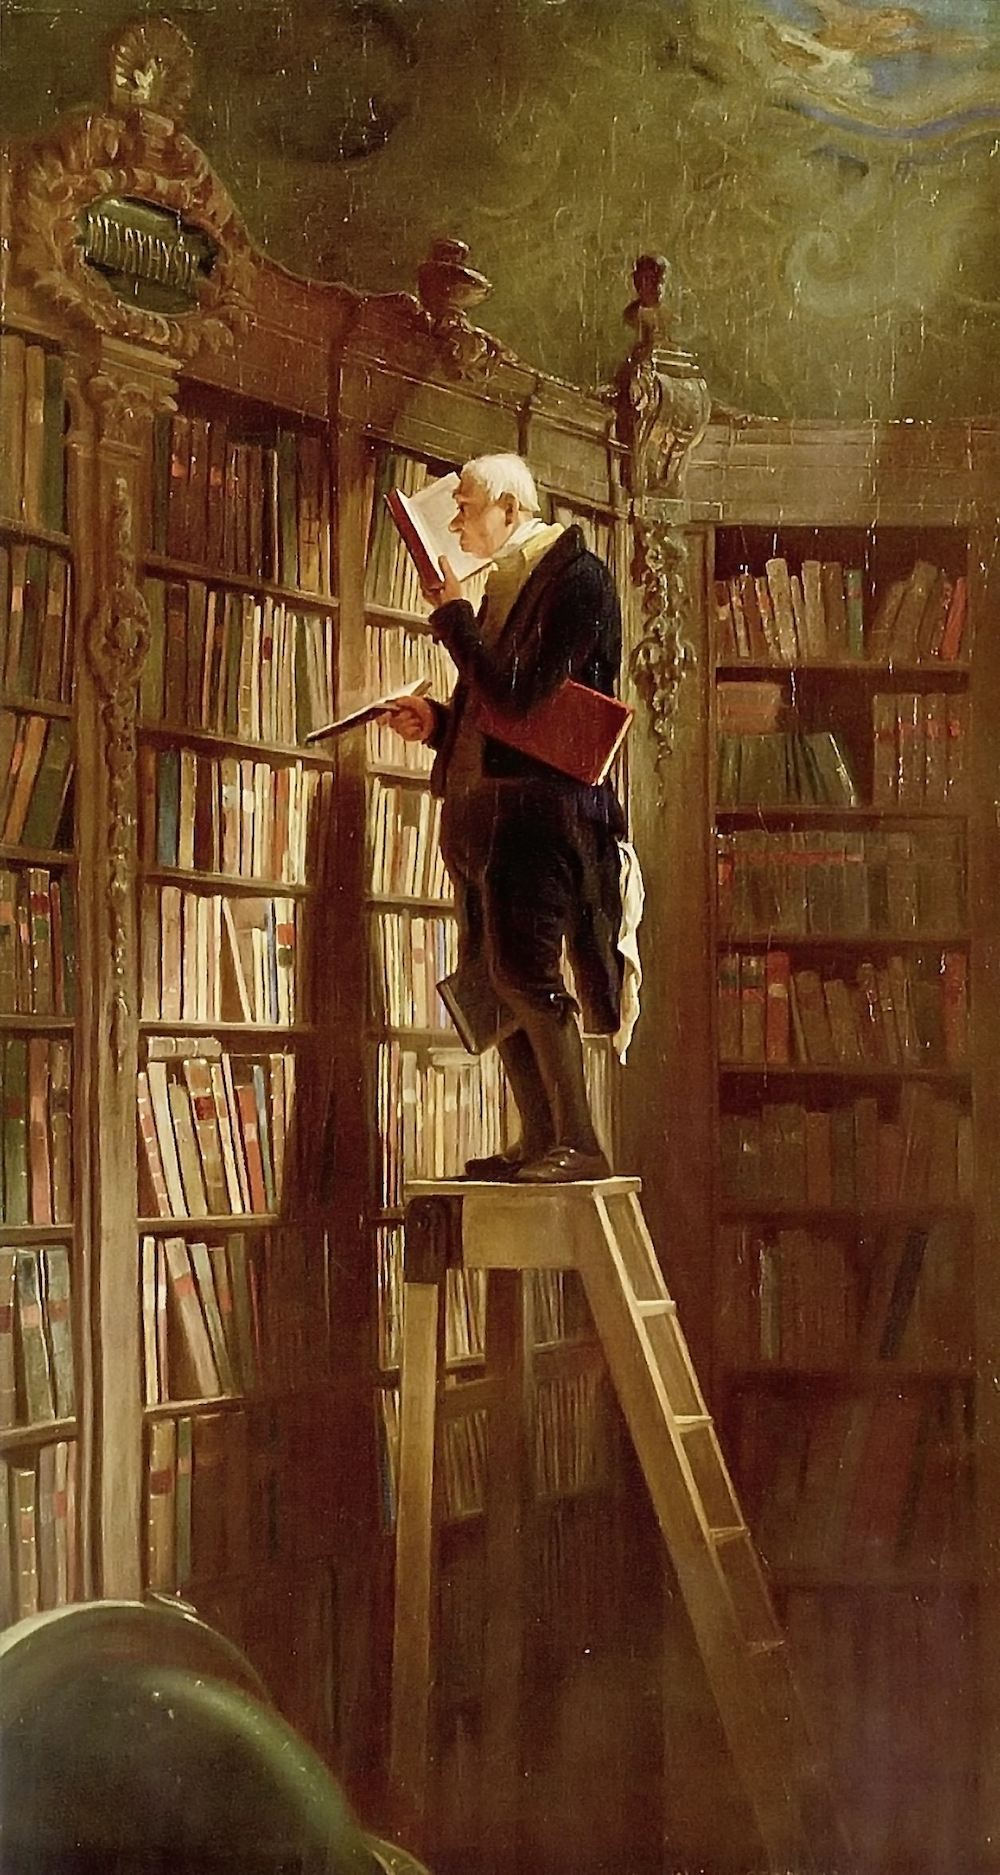 A painting of a man standing on top of a ladder in a room covered in built-in bookshelves. He is holding a book open and appears to be reading intently.